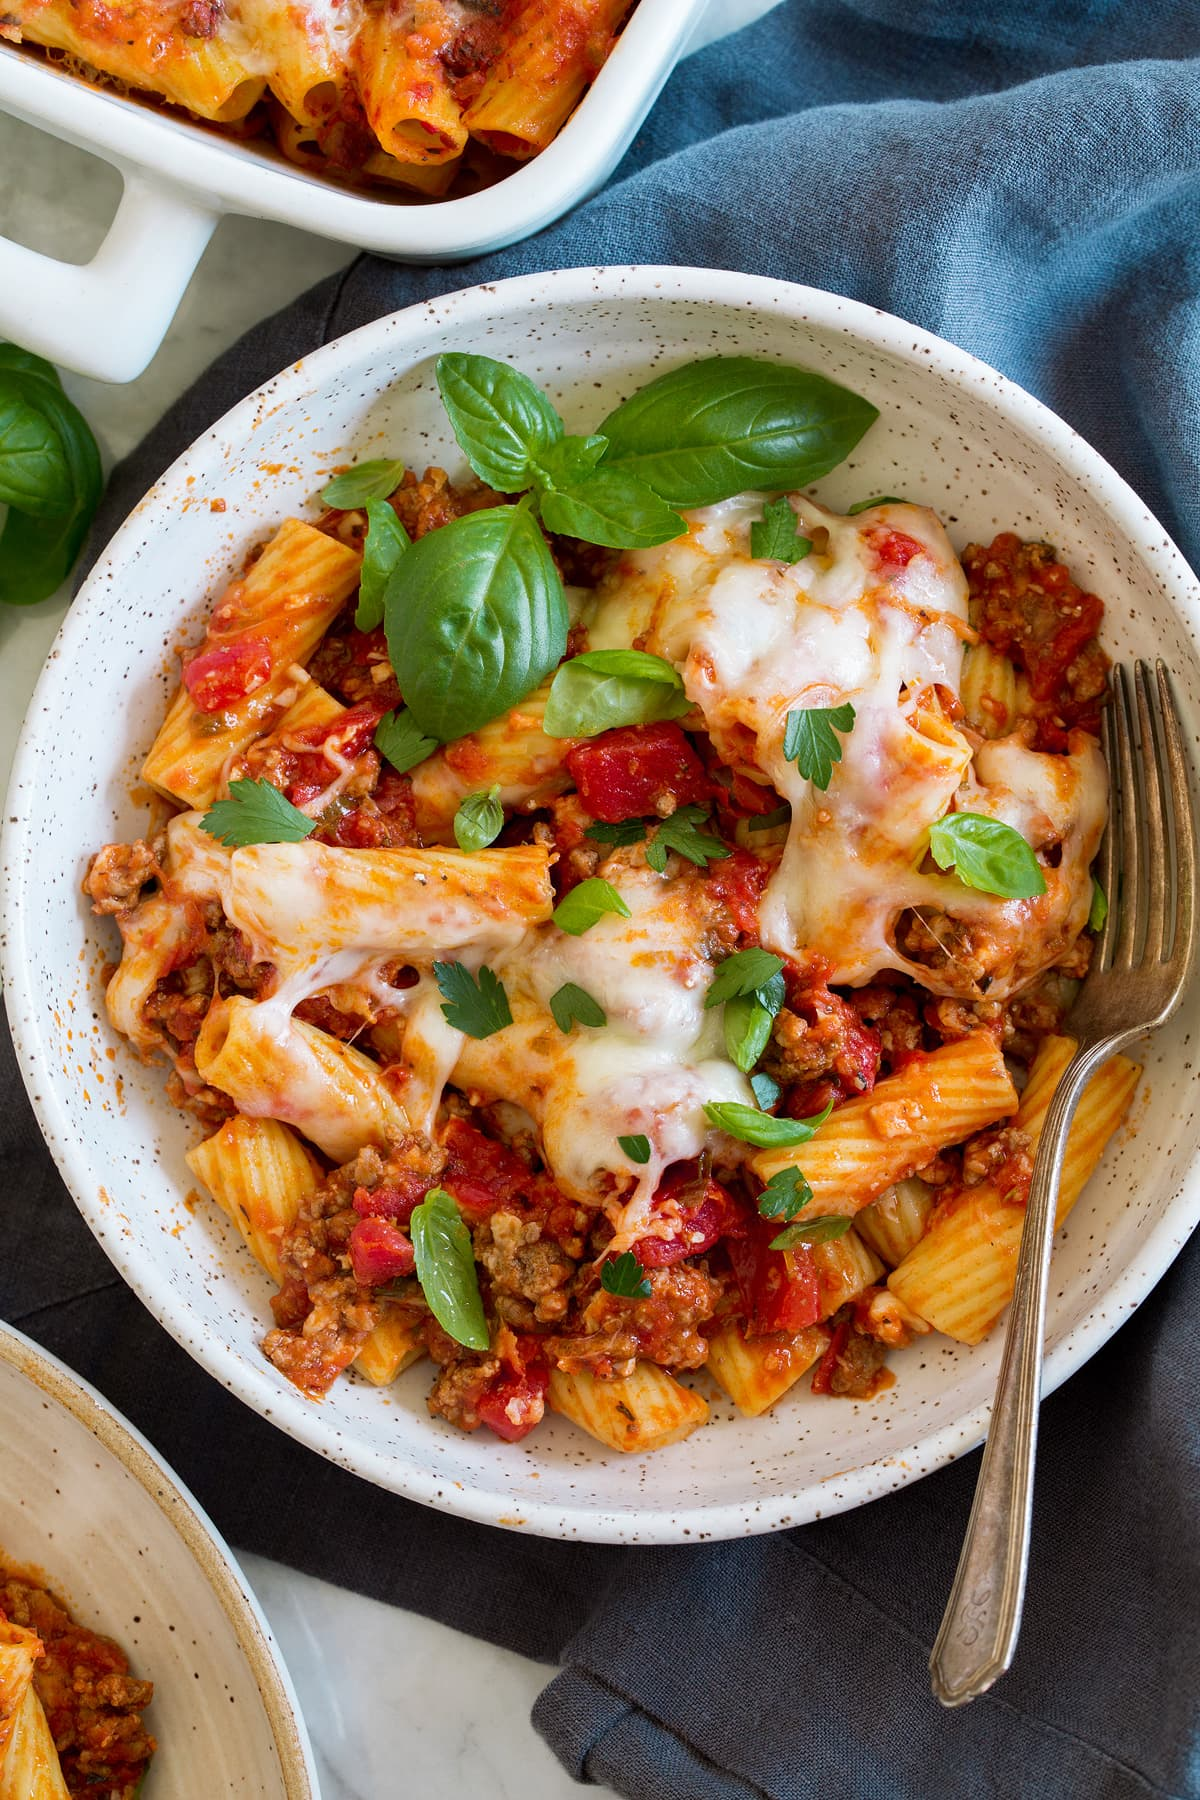 Overhead photo of a serving of baked rigatoni shown in a pasta bowl with a fork.